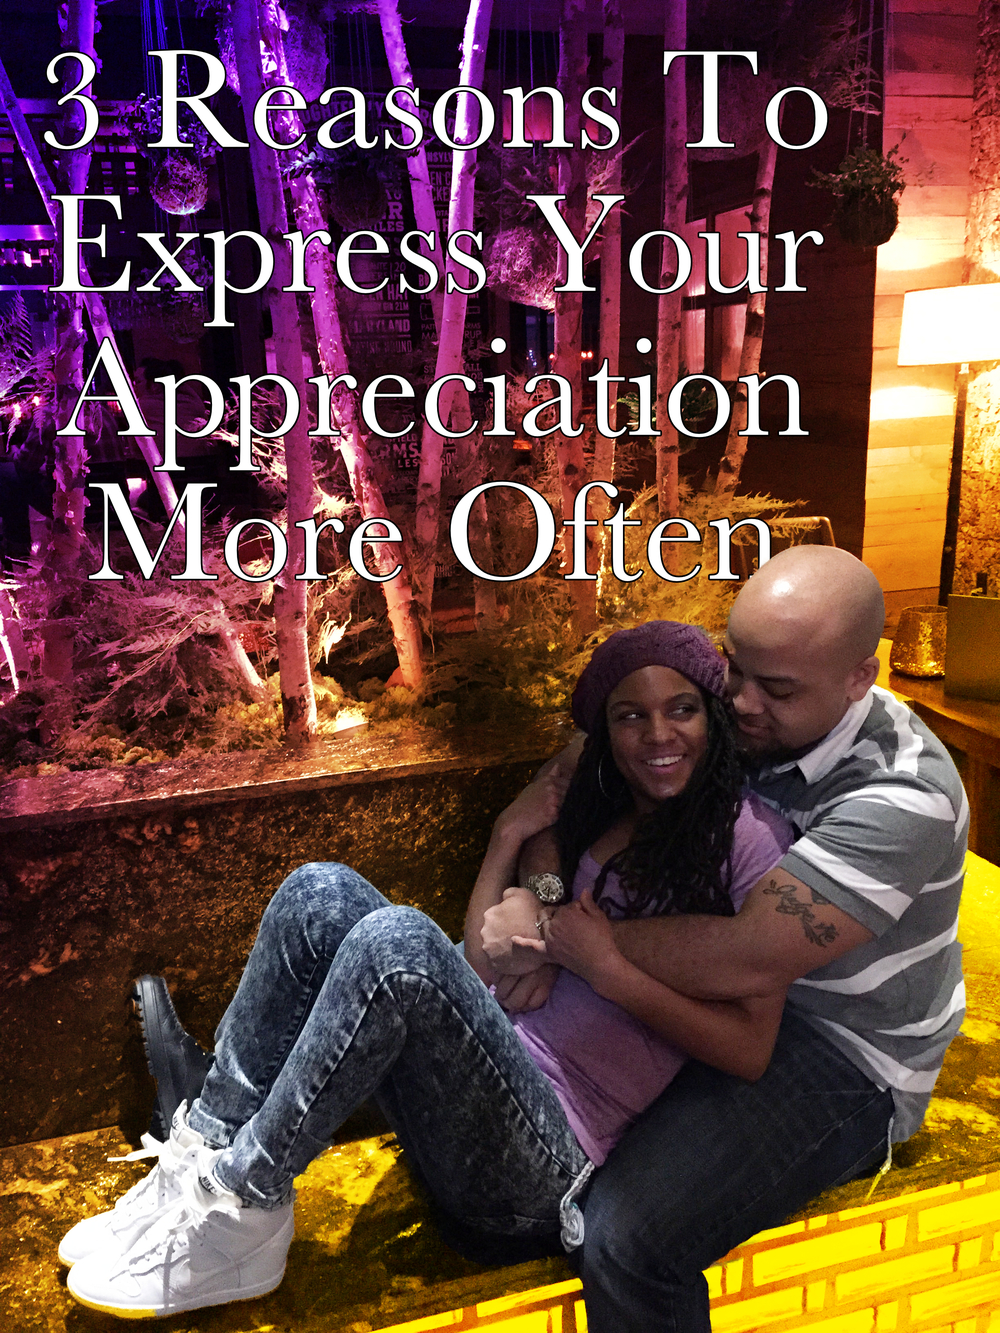 reasons to express your appreciation more often Begotten Life